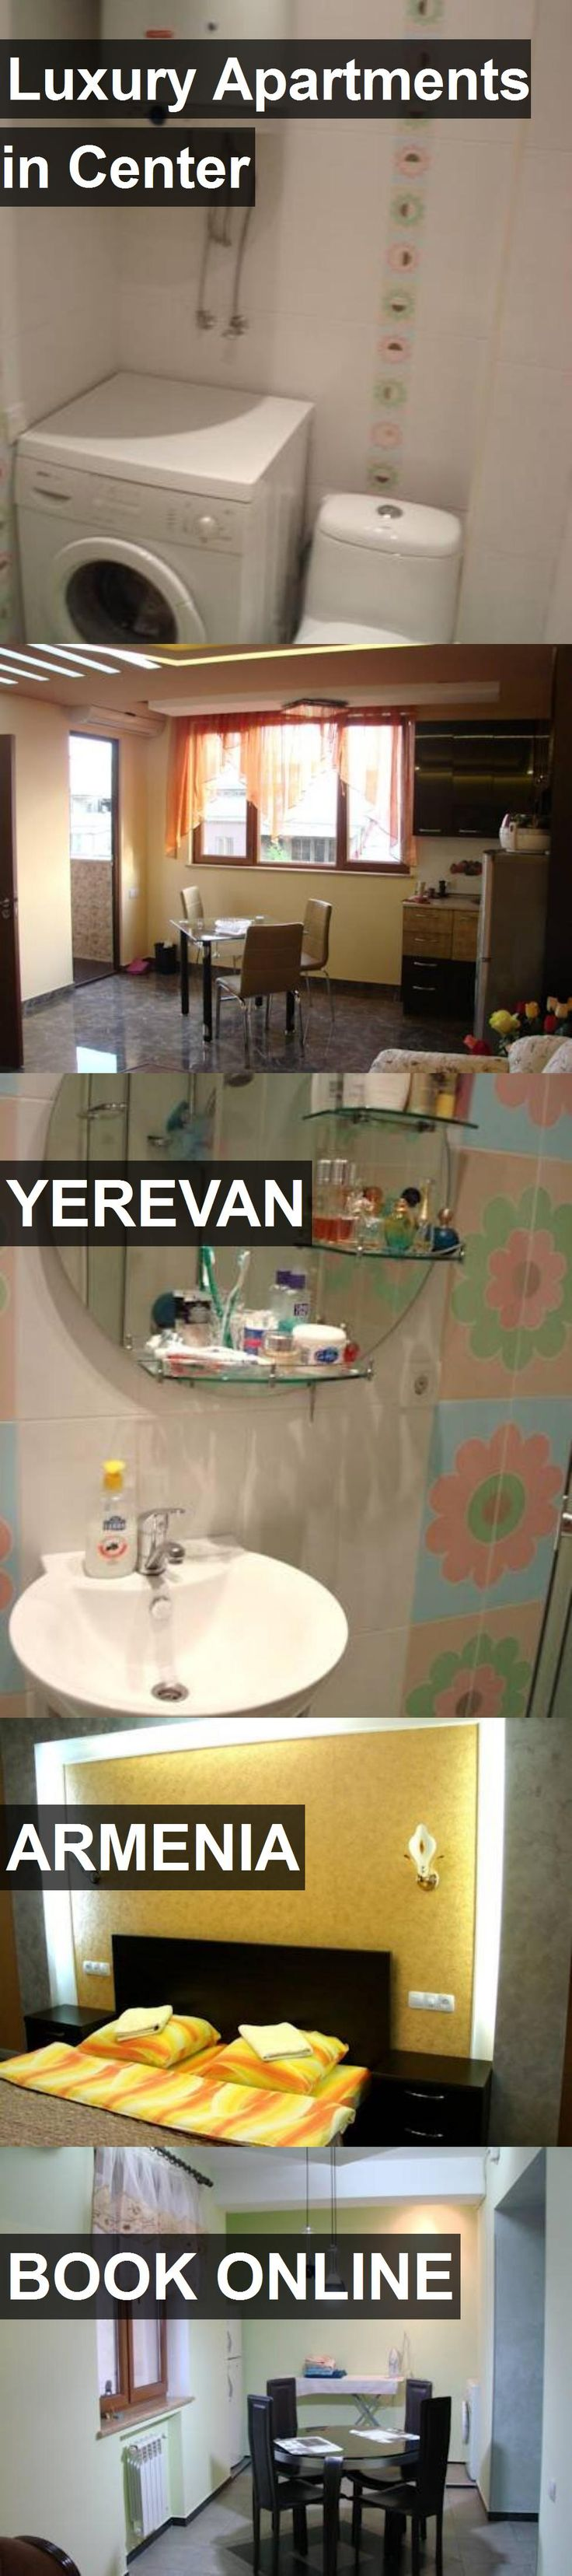 Luxury Apartments in Center in Yerevan, Armenia. For more information, photos, reviews and best prices please follow the link. #Armenia #Yerevan #travel #vacation #apartment